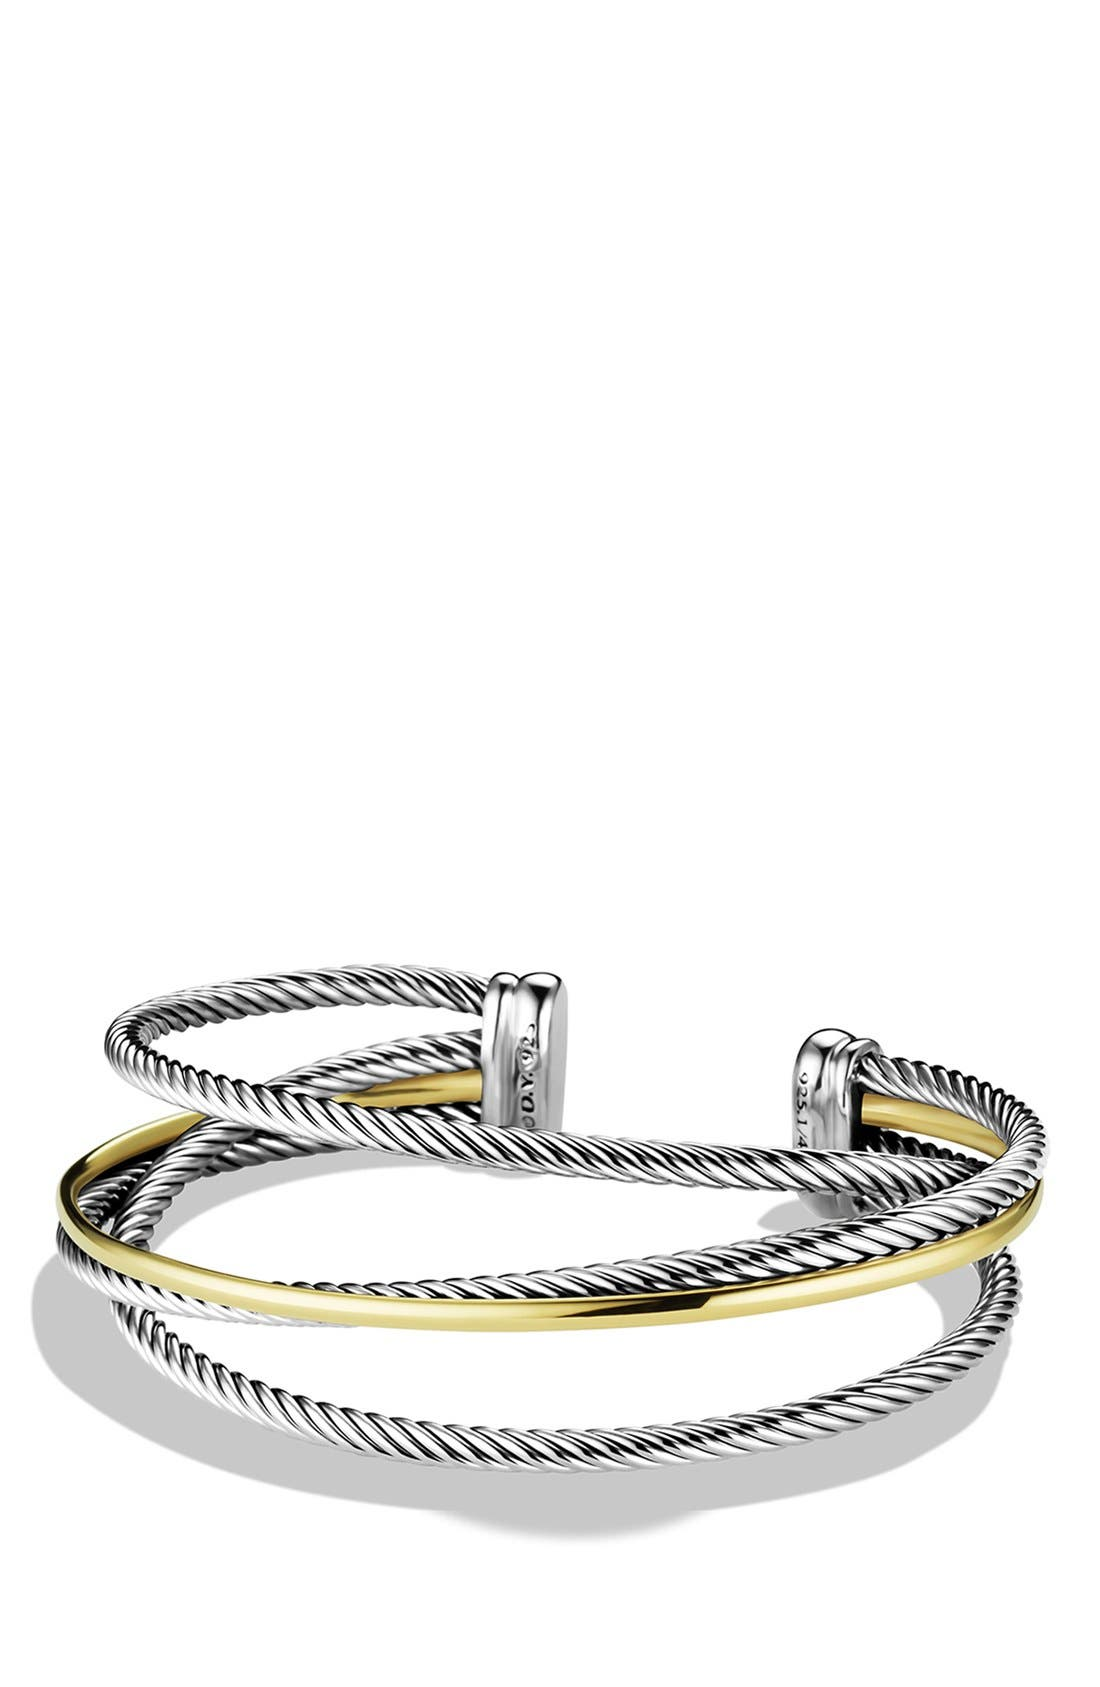 Main Image - David Yurman 'Crossover' Three-Row Cuff with Gold